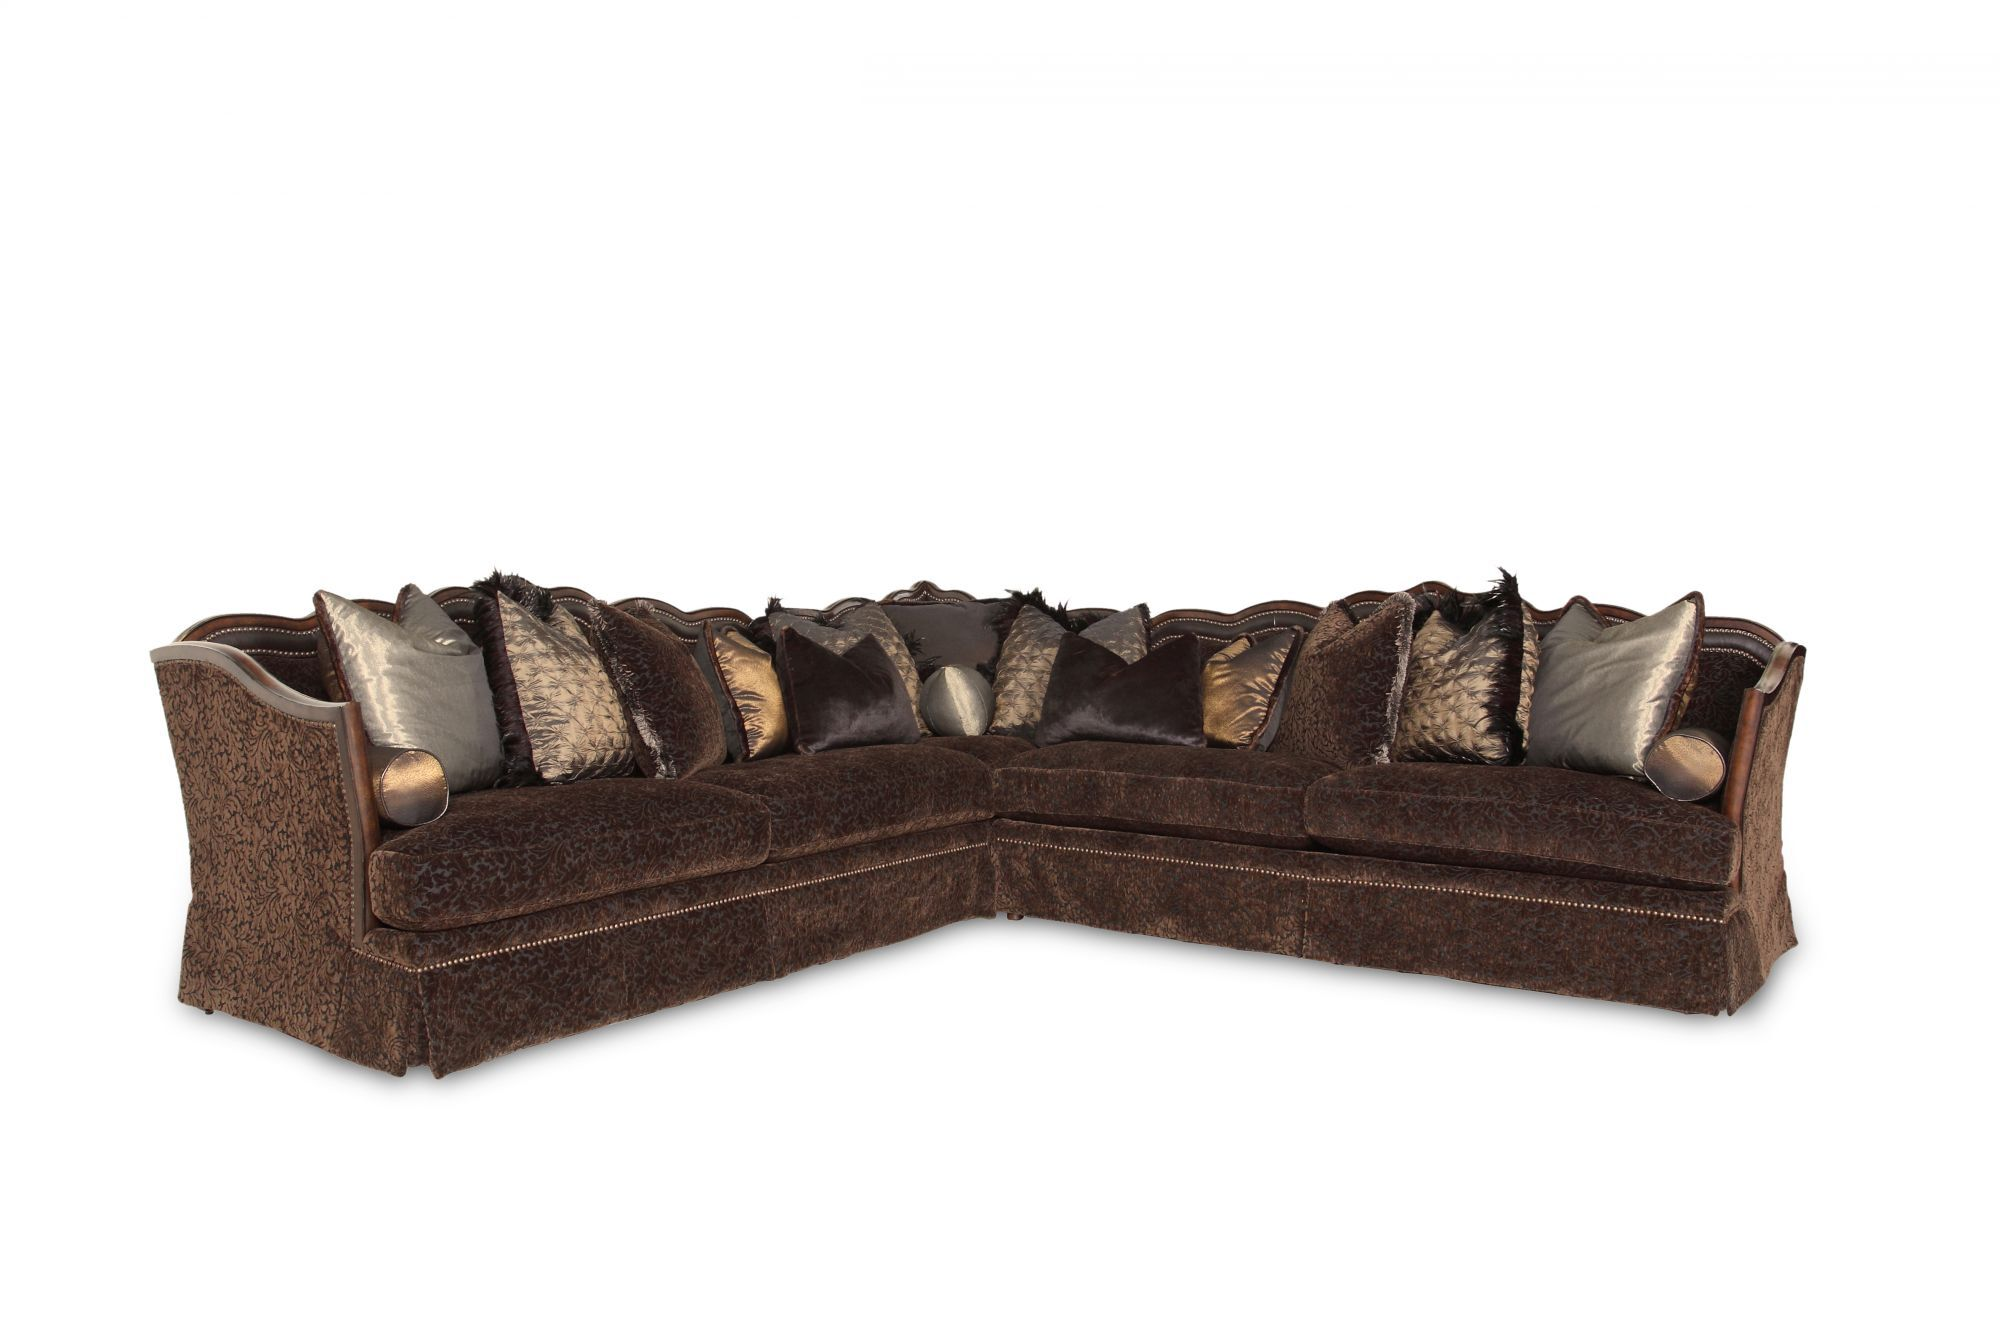 Three Piece Traditional 215 Leaf Patterned Sectional In